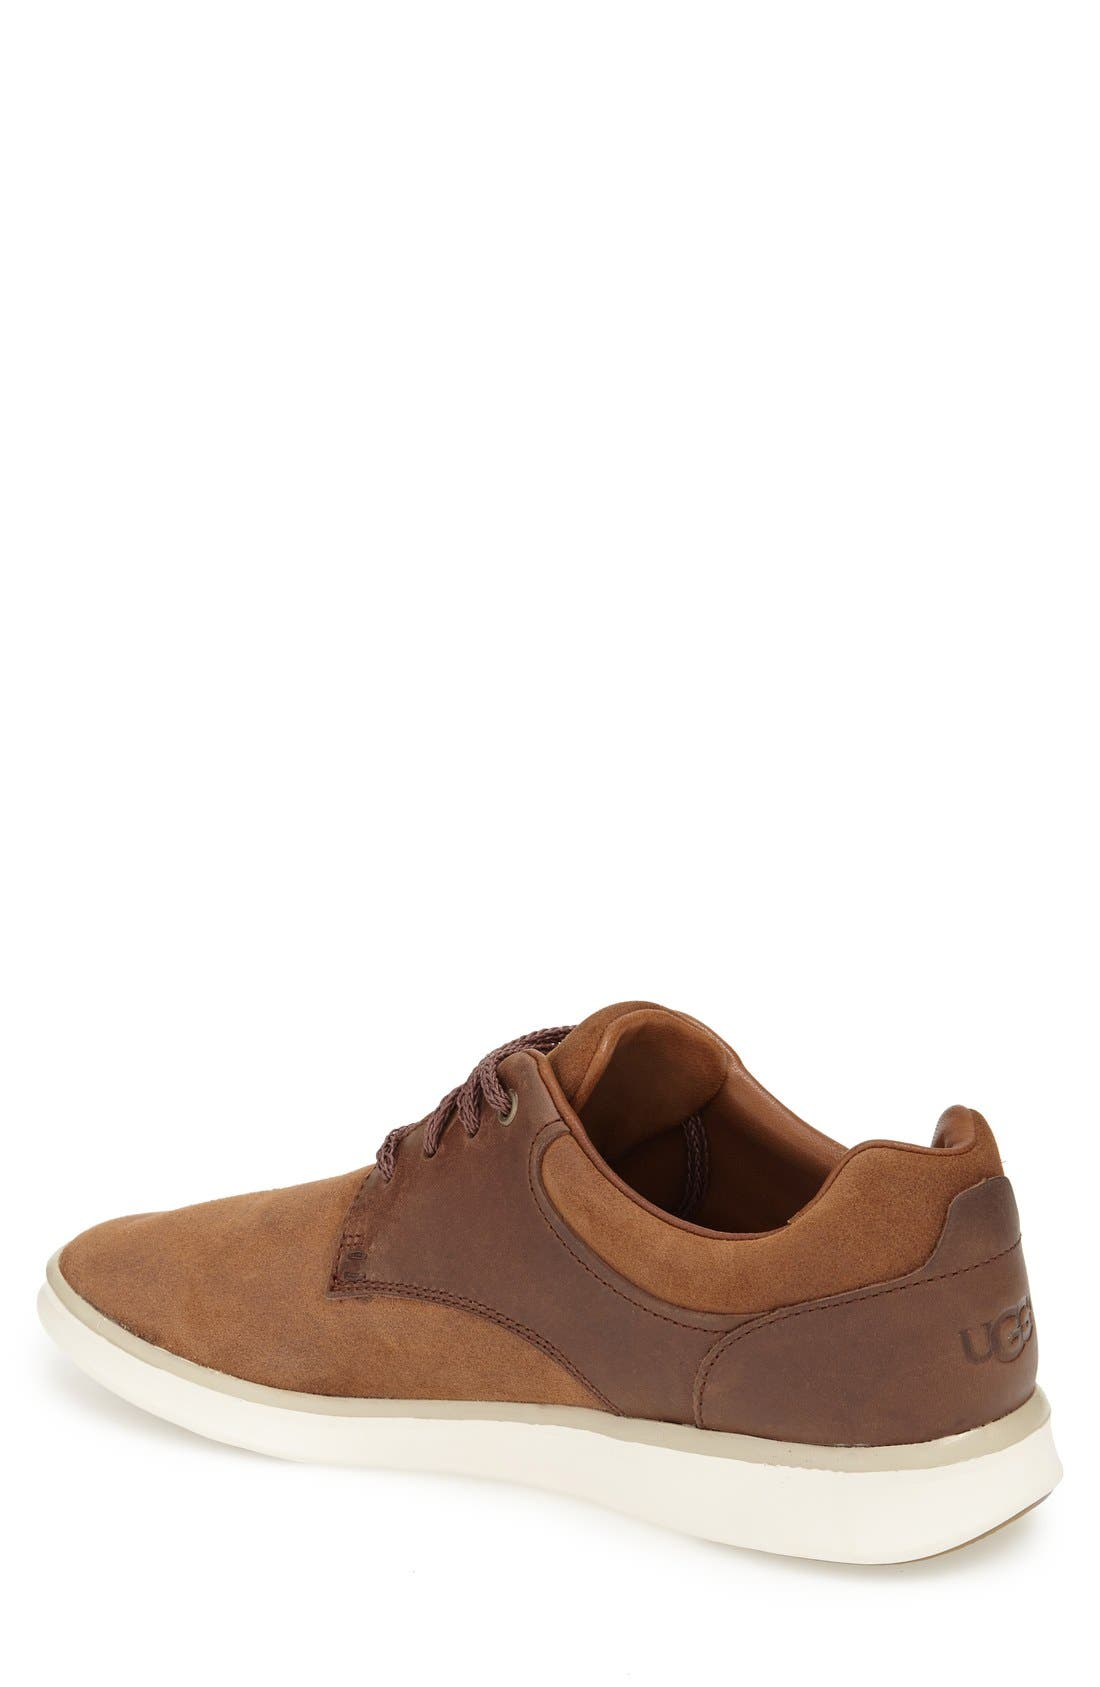 'Hepner' Sneaker,                             Alternate thumbnail 2, color,                             Chestnut